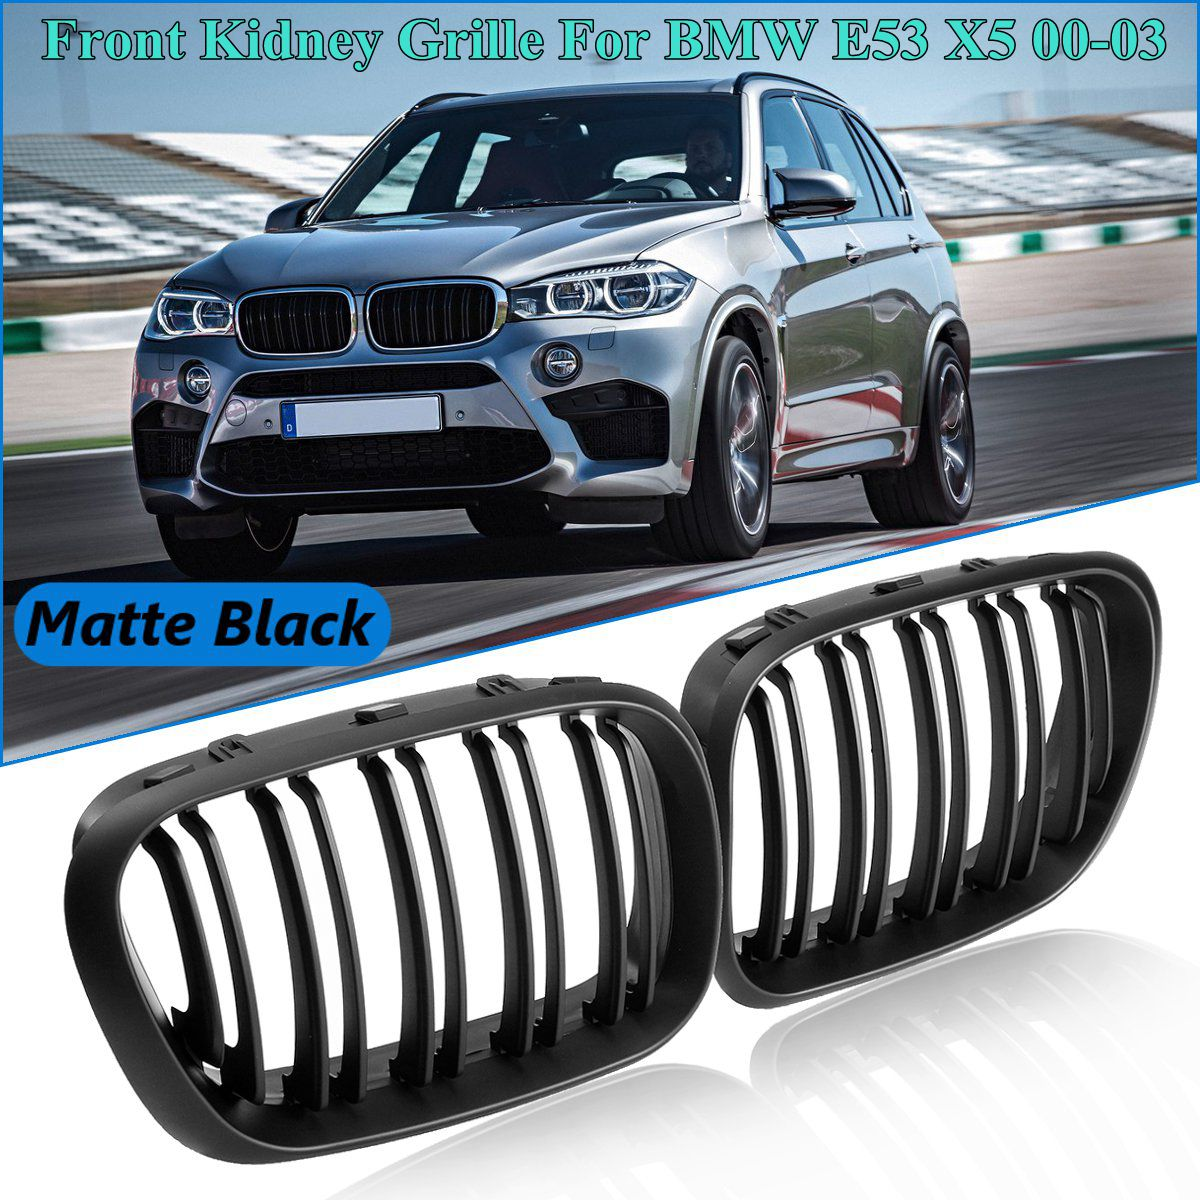 Pair Matte Black Front Kidney Grille Grills Double Slat For BMW <font><b>E53</b></font> X5 2000 <font><b>2001</b></font> 2002 2003 Car Styling Racing Grills image